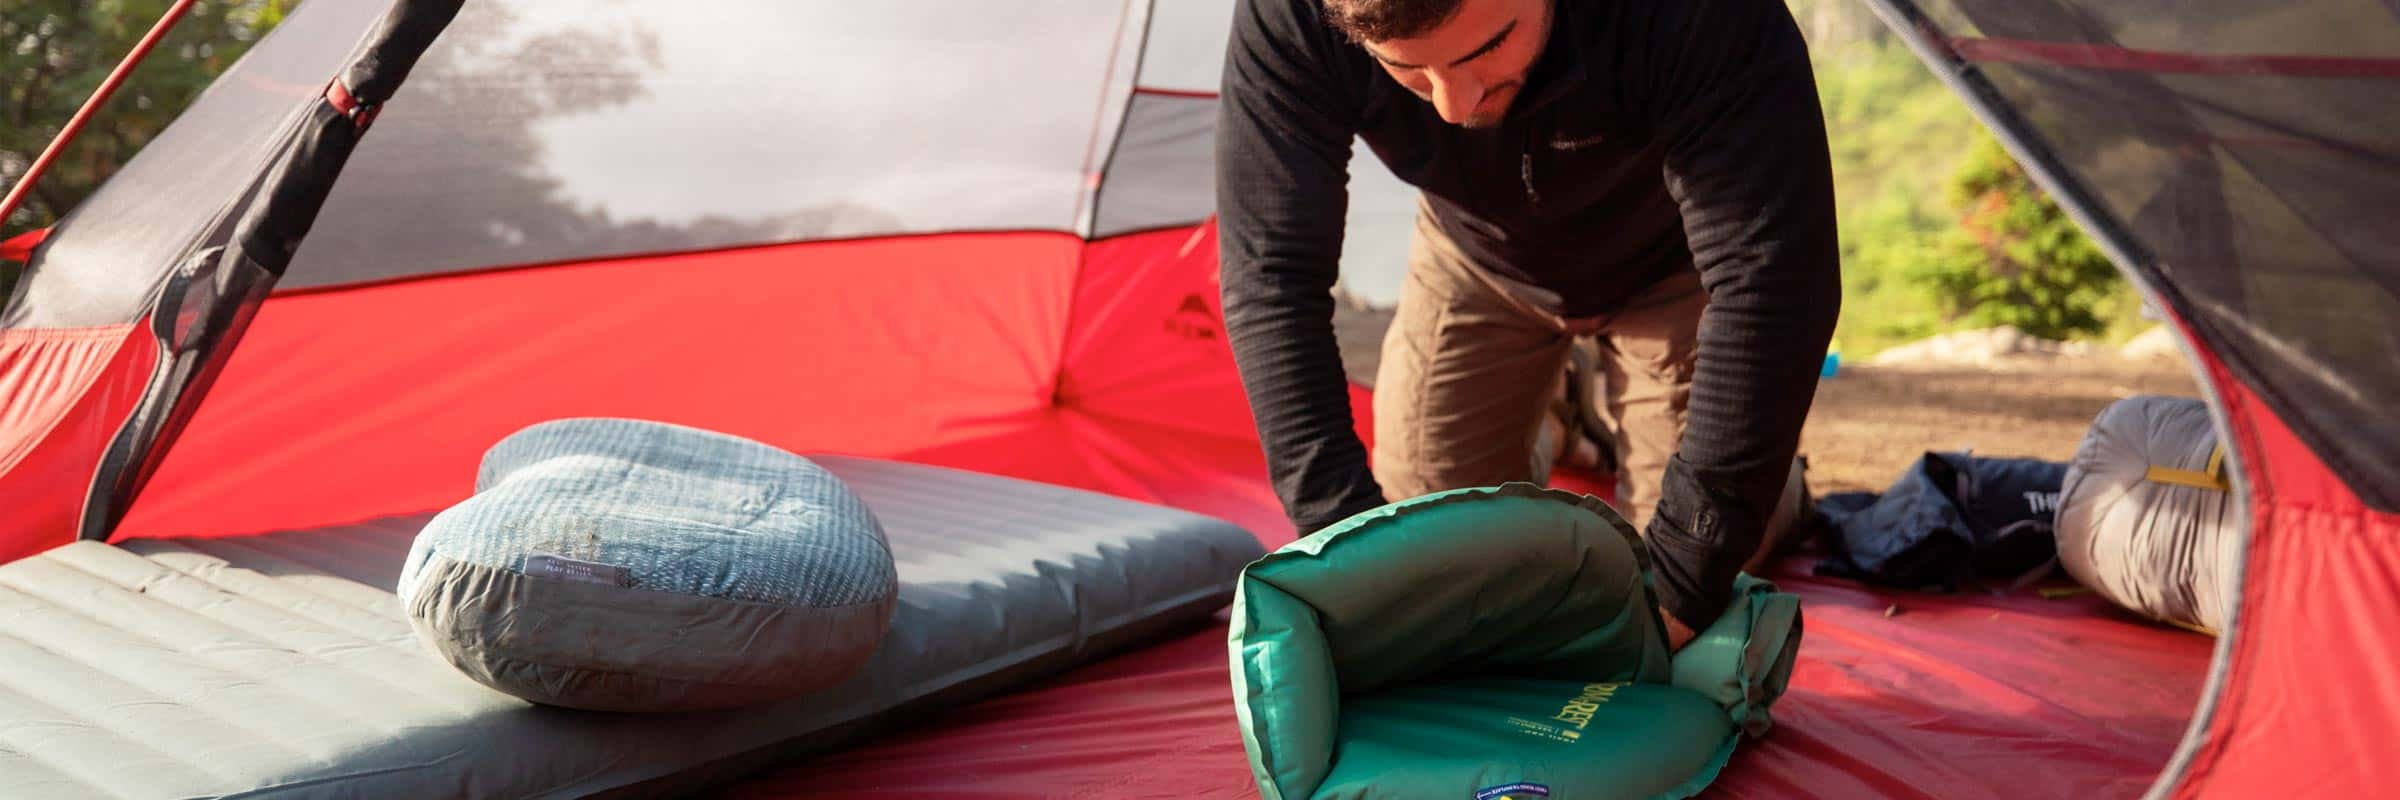 Best Camping Mattresses and Sleeping Pads in 2021